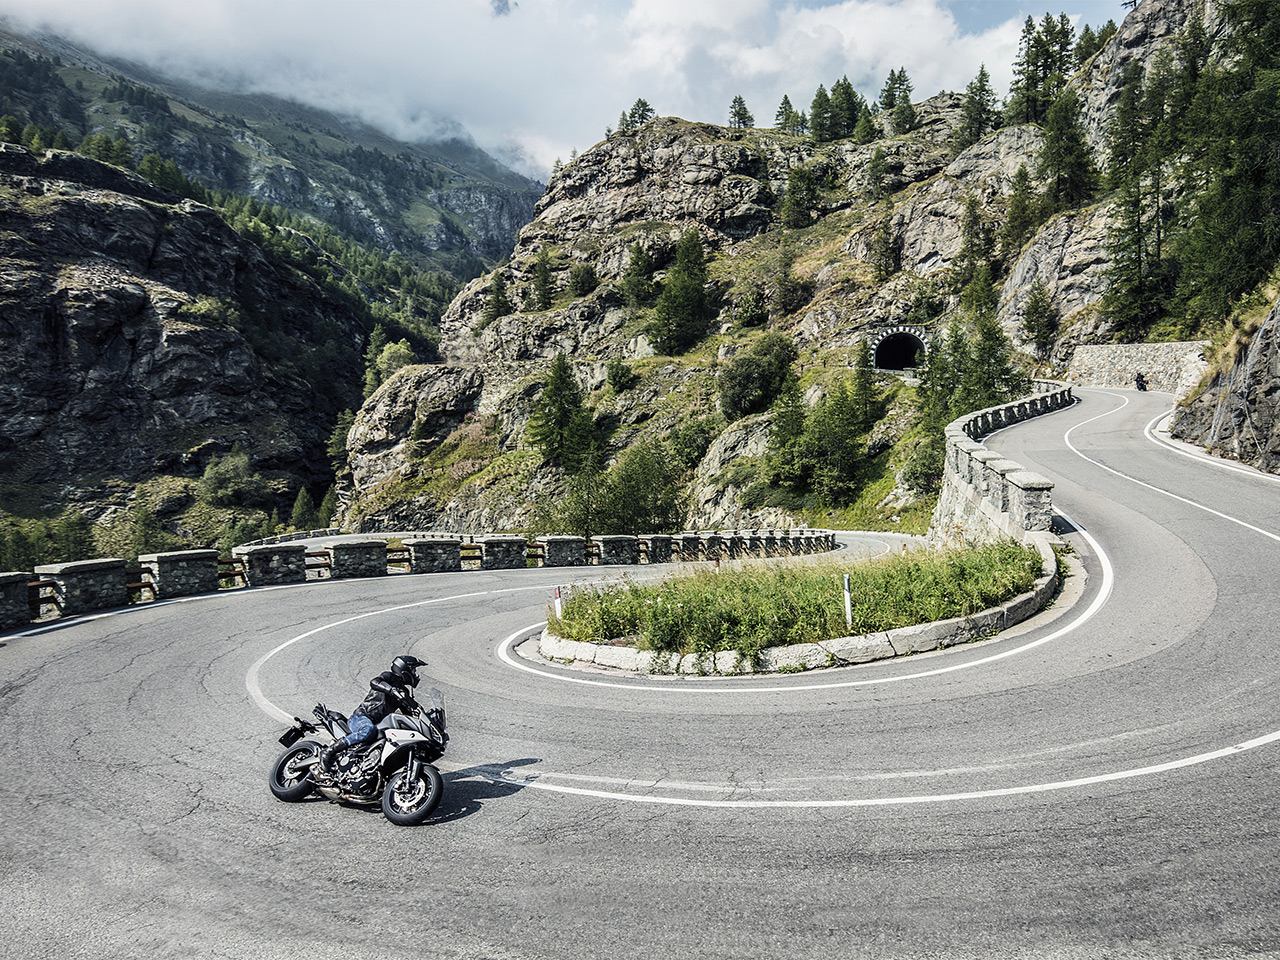 Yamaha Tracer 900 motorcycle riding on the hill road